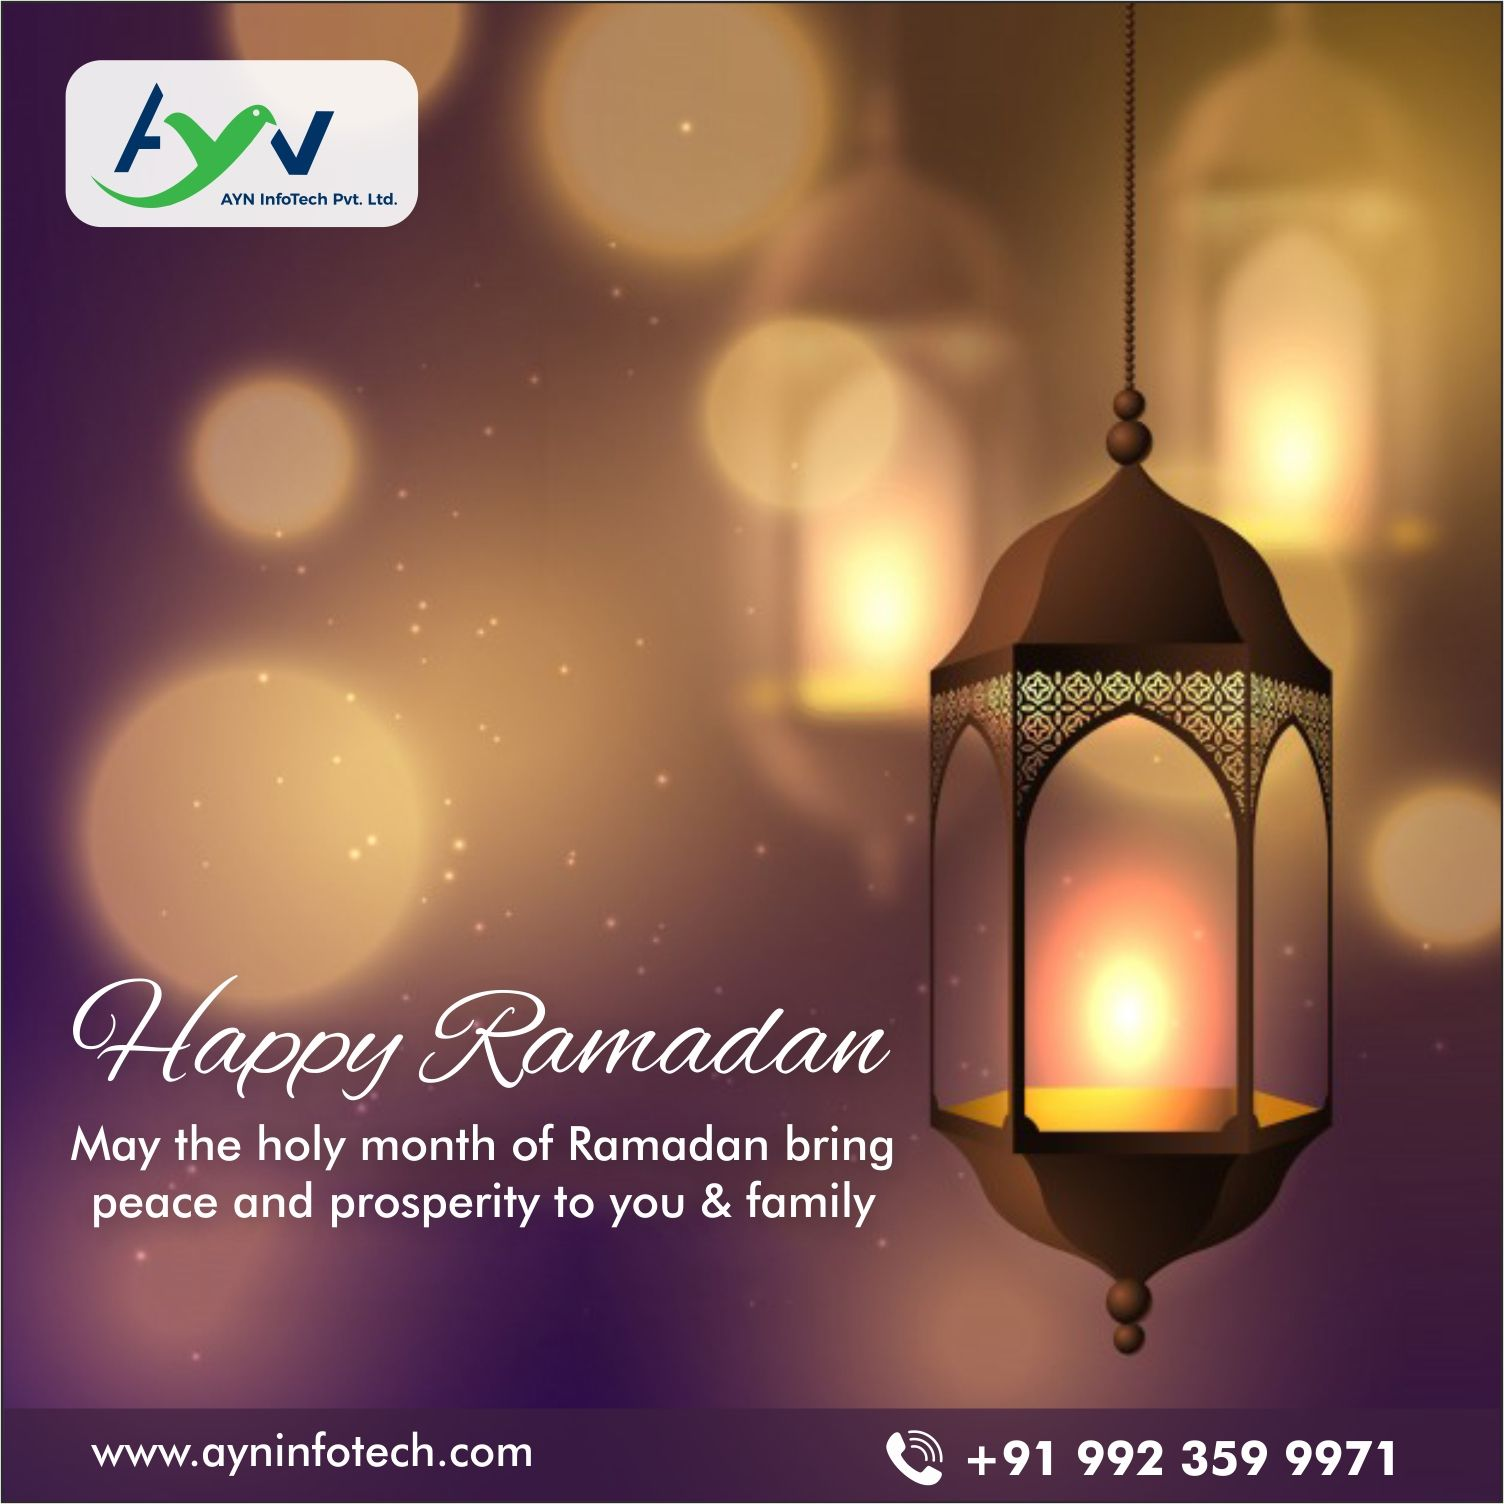 The month of ramadan with the heart filled with